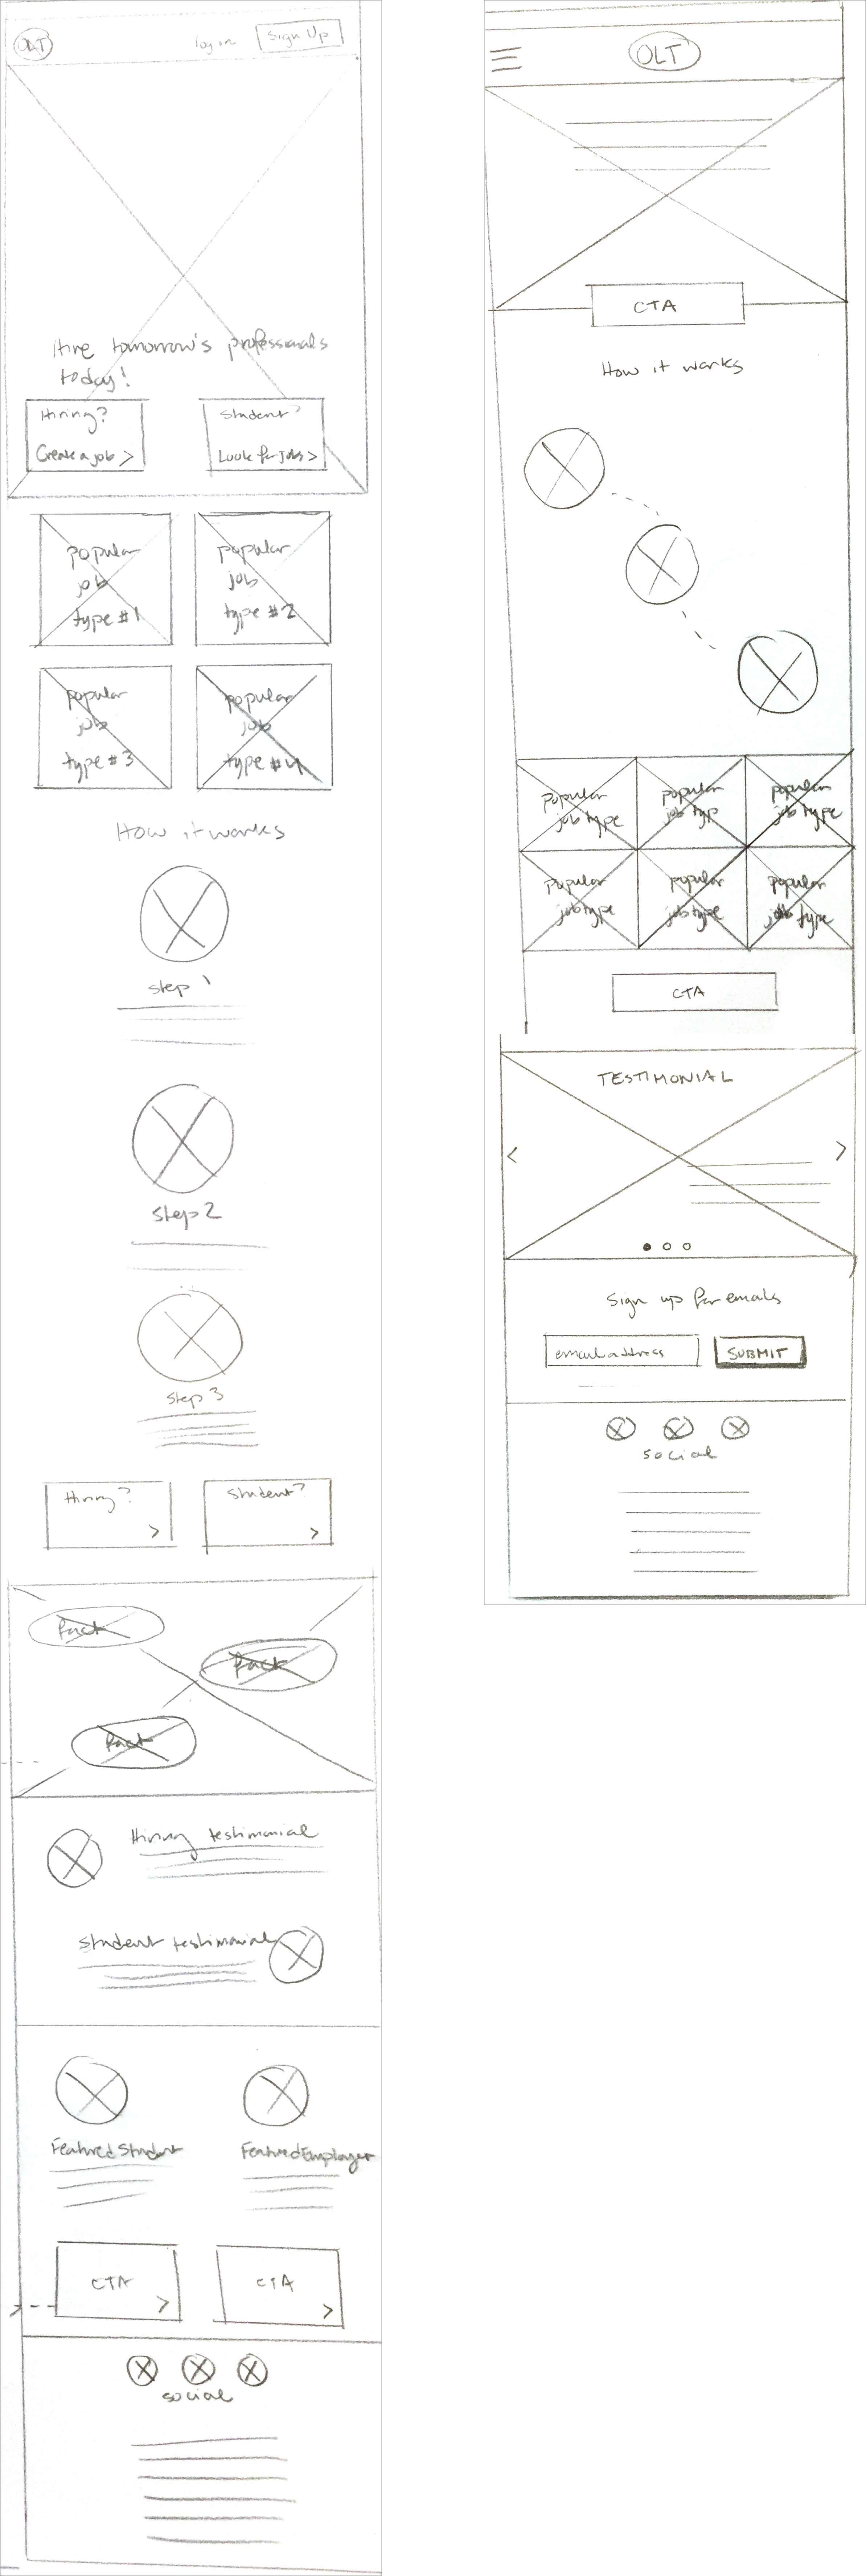 Two initial homepage sketches